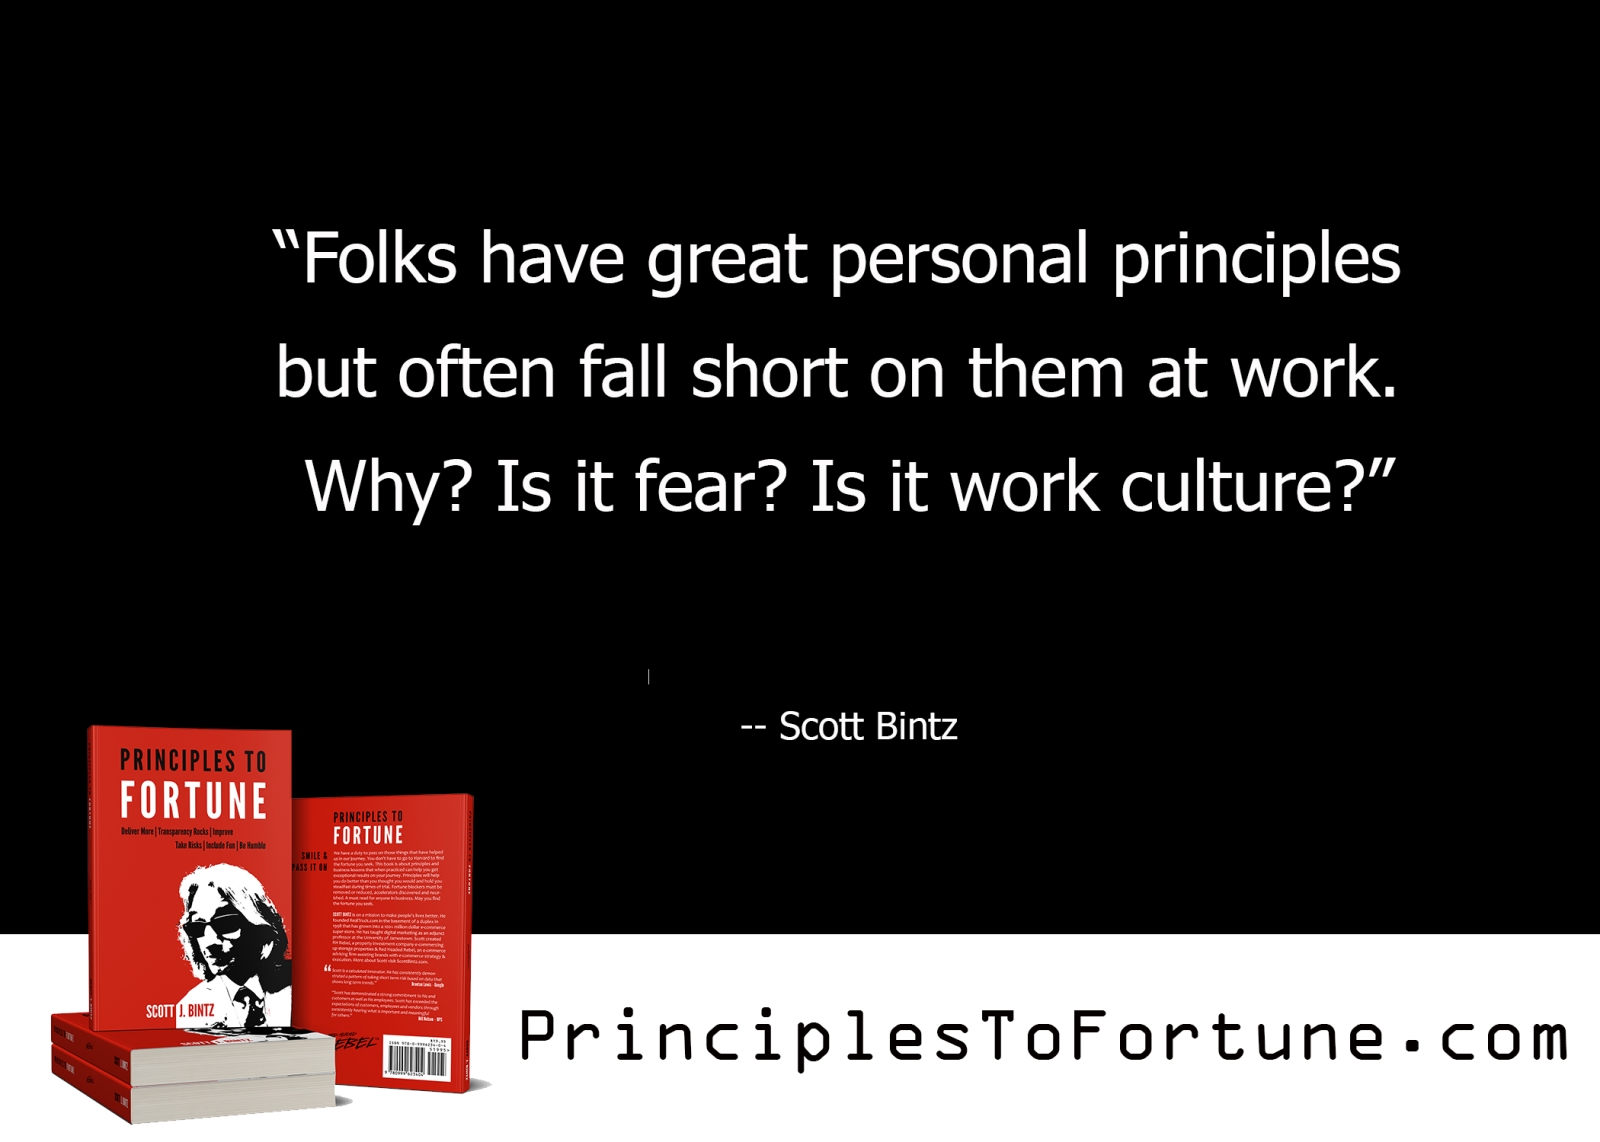 """""""Folks have great personal principles but often fall short on them at work. Why? Is it fear? Is it work culture?"""" -- Quote from the Book Principles to Fortune by Scott Bintz"""